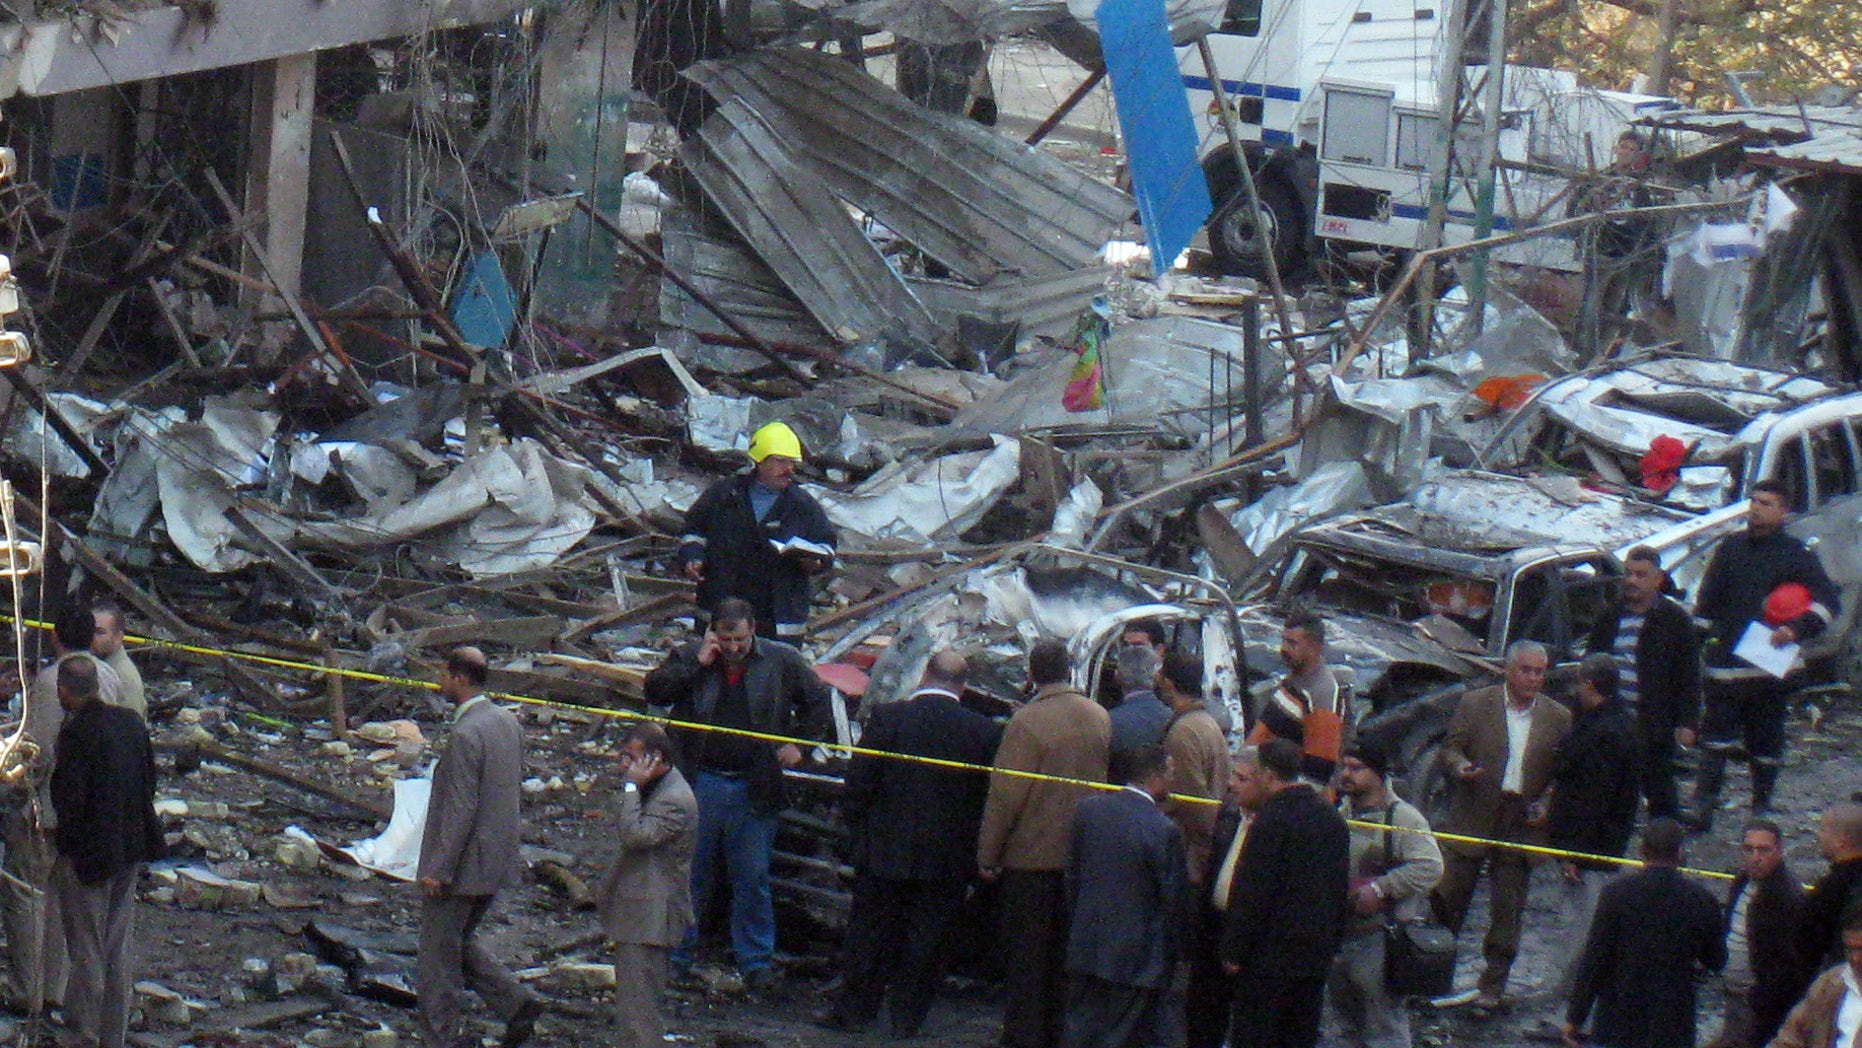 Dec. 22, 2011: Iraqi security forces and people inspect the scene of a car bomb attack in Baghdad, Iraq. A series of blasts Thursday morning in Baghdad killing and wounding scores of people in a coordinated attack designed to wreak havoc across the Iraqi capital.